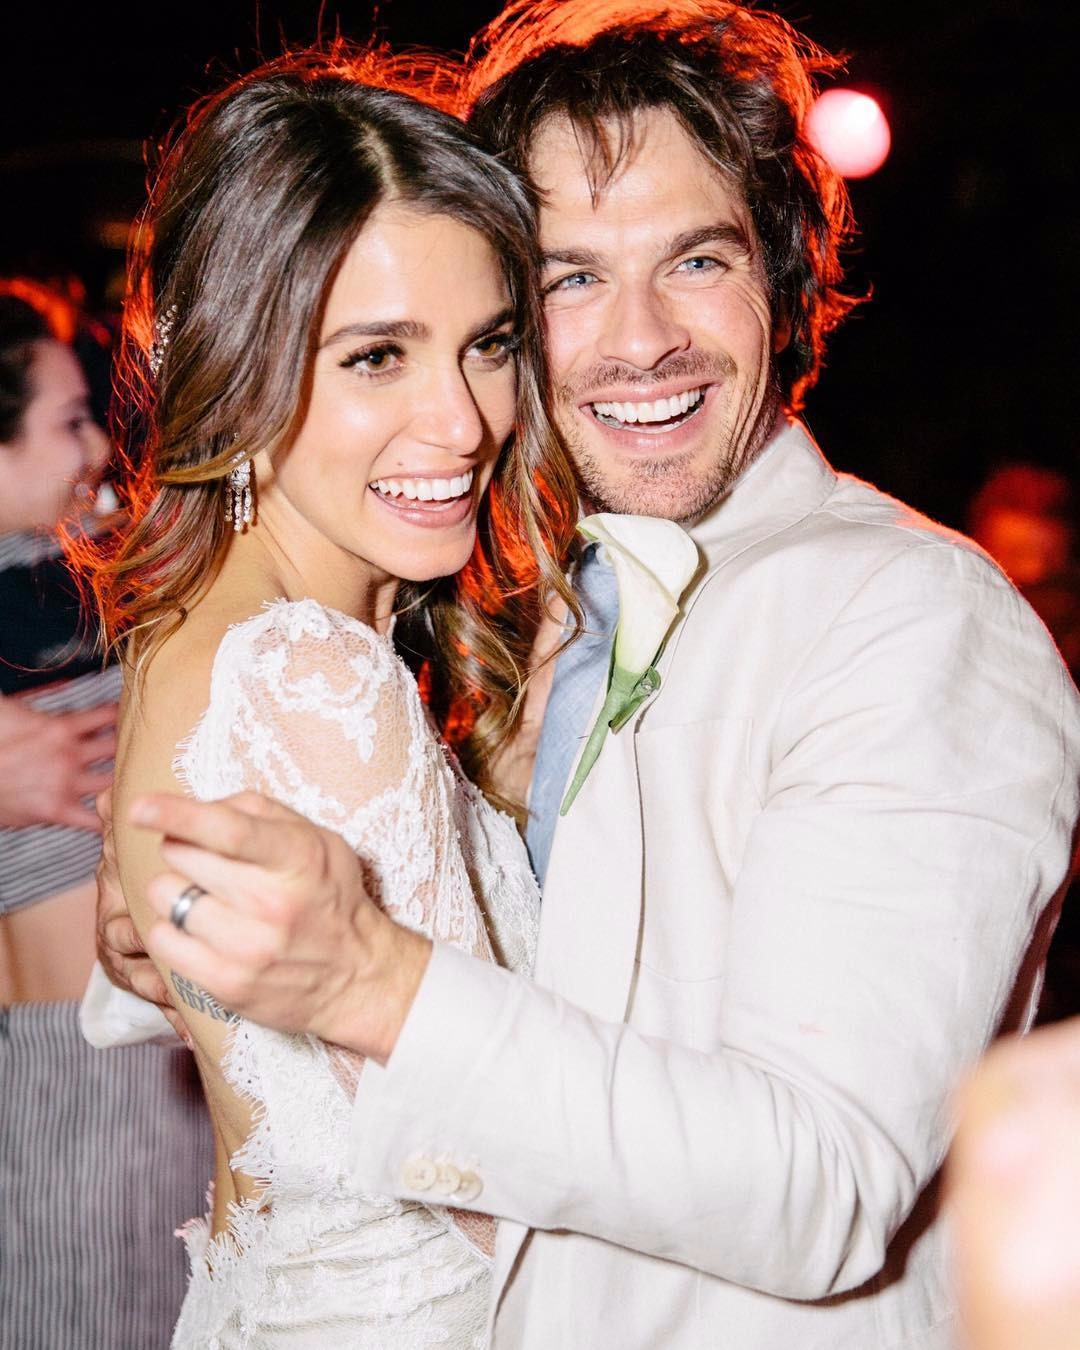 Ian Somerhalder and Nikki Reed embracing on their wedding day